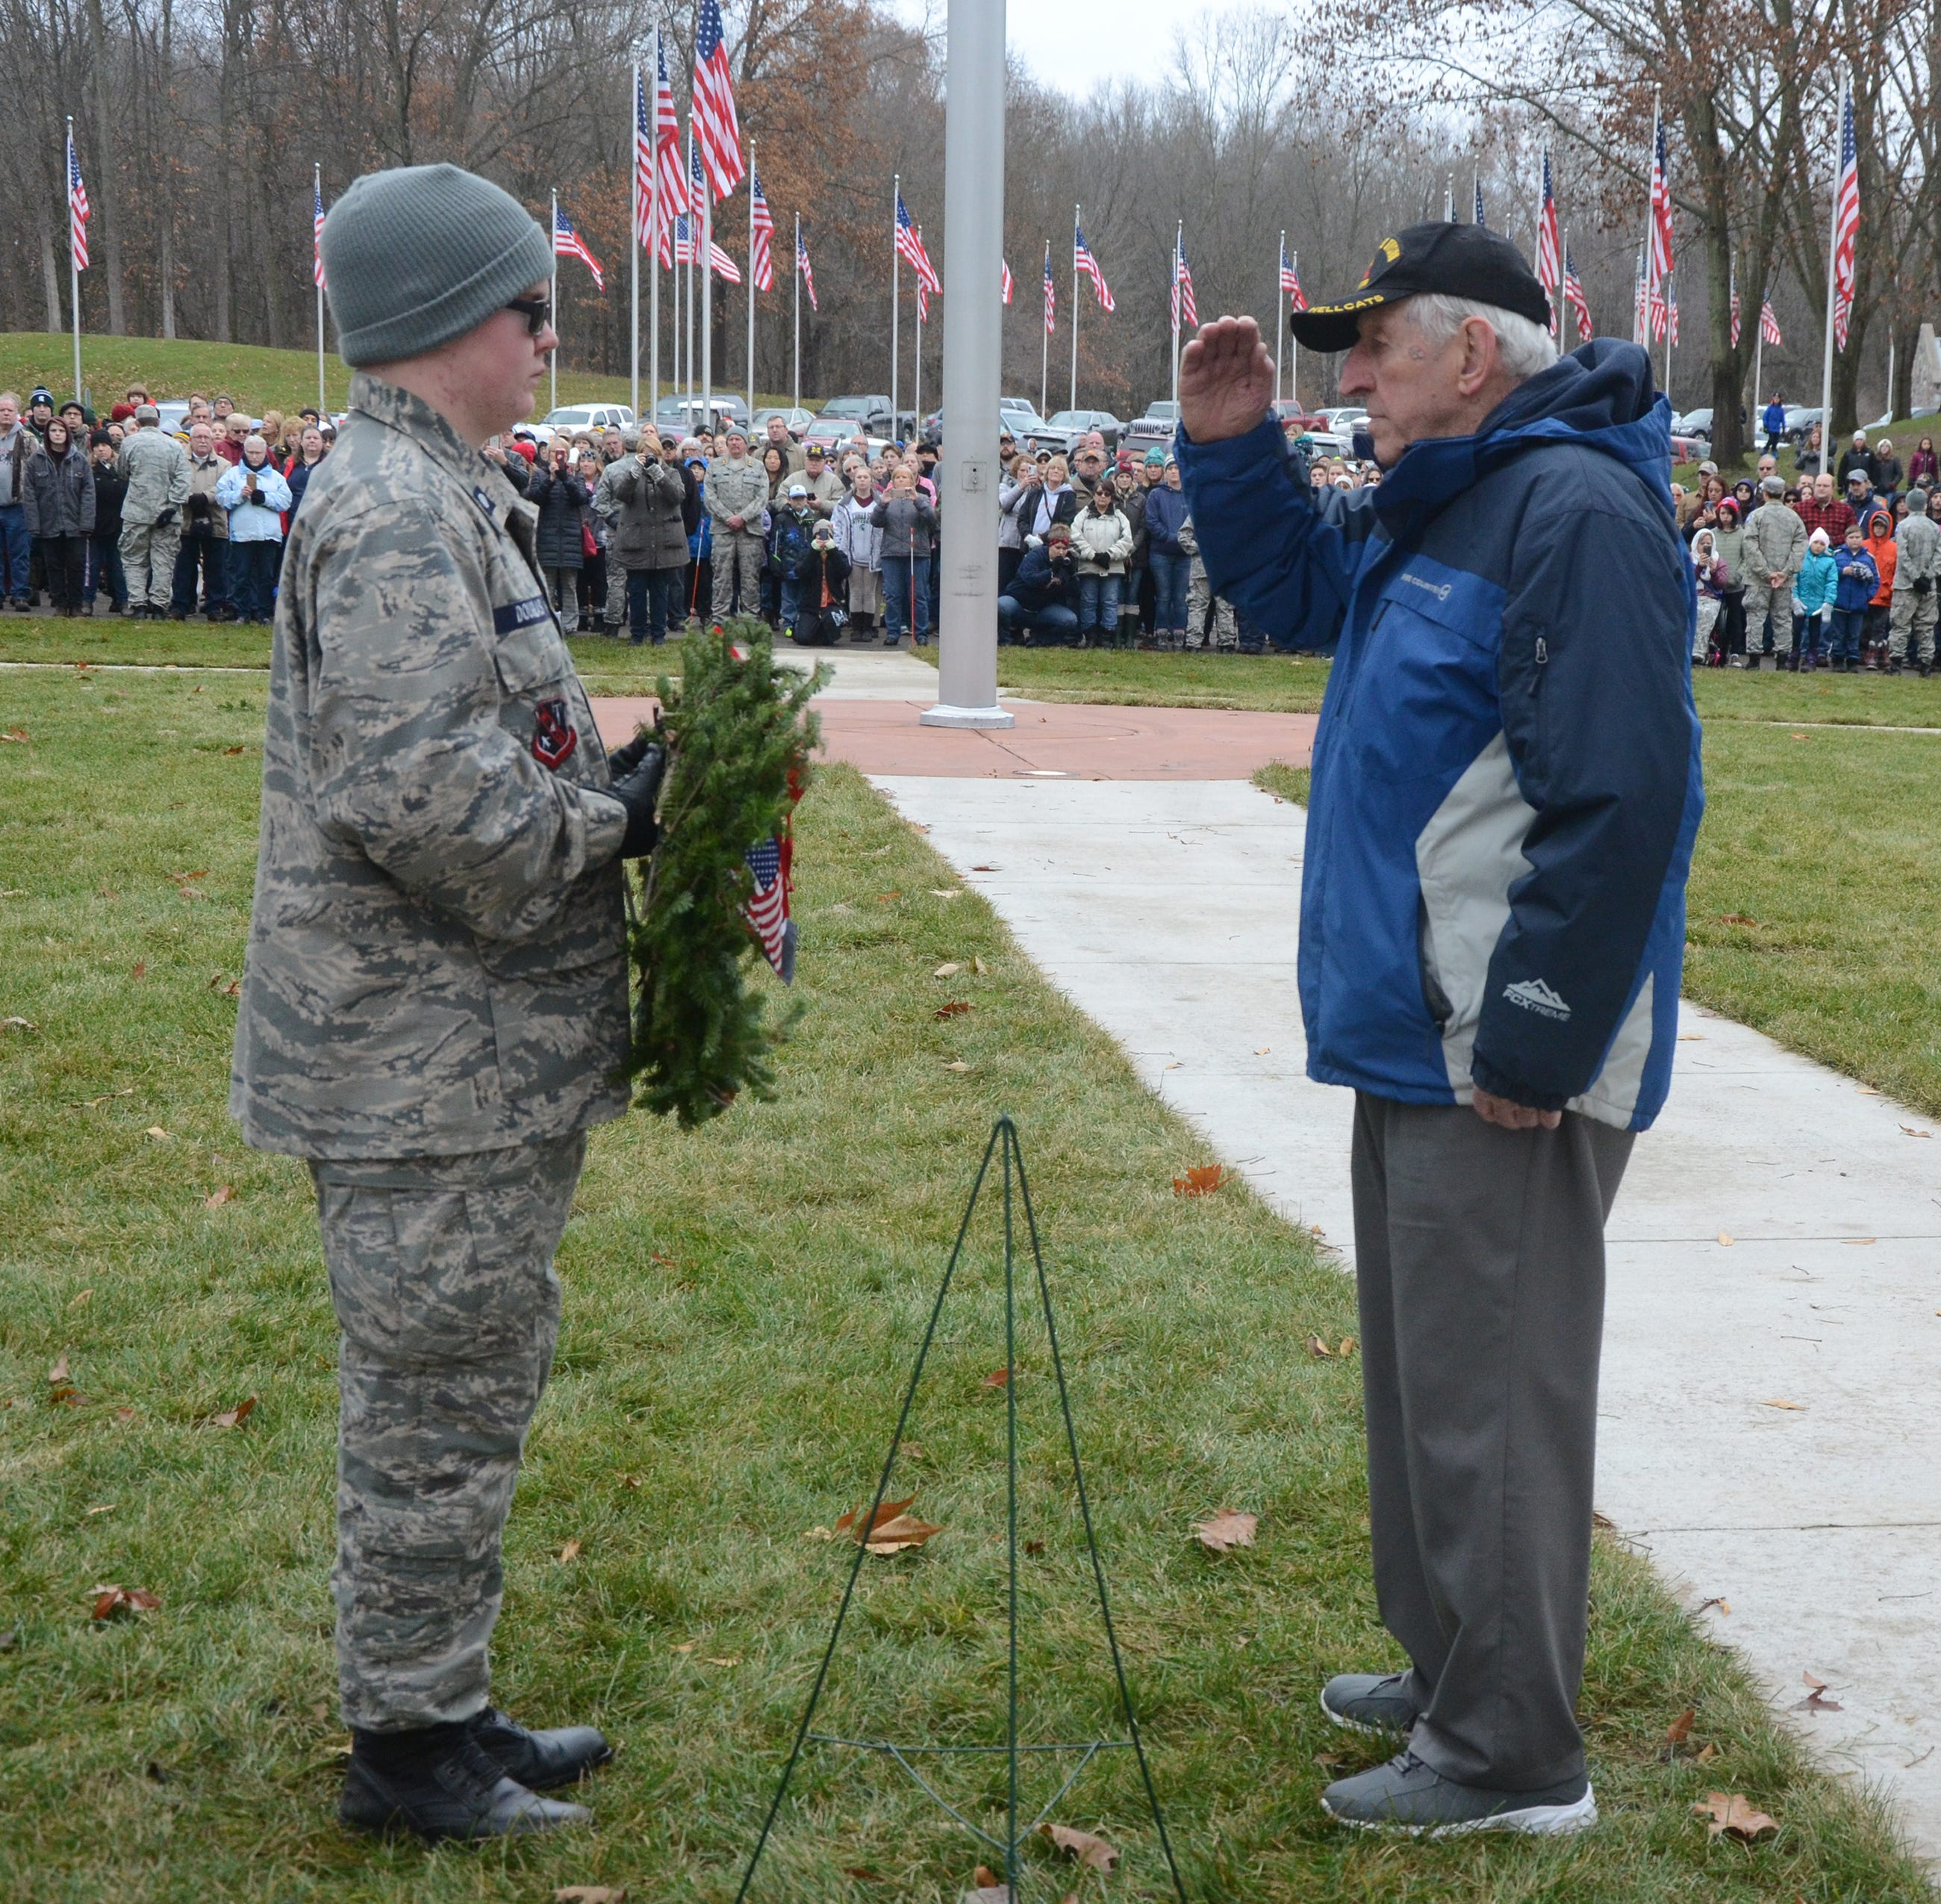 People gather at Fort Custer Cemetery to honor veterans with wreaths